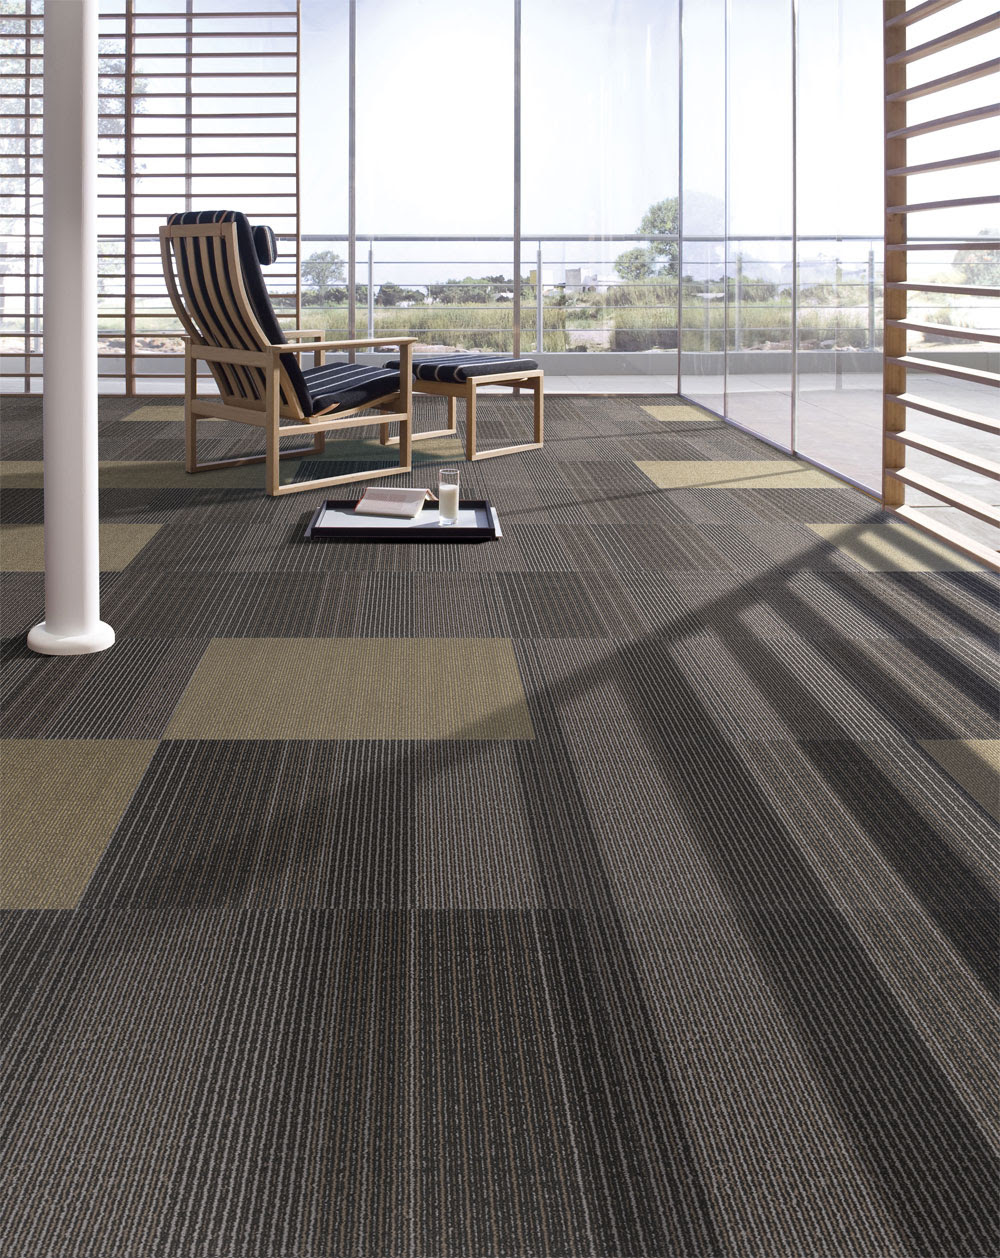 Office carpet tiles NZ for fitouts and redecorating